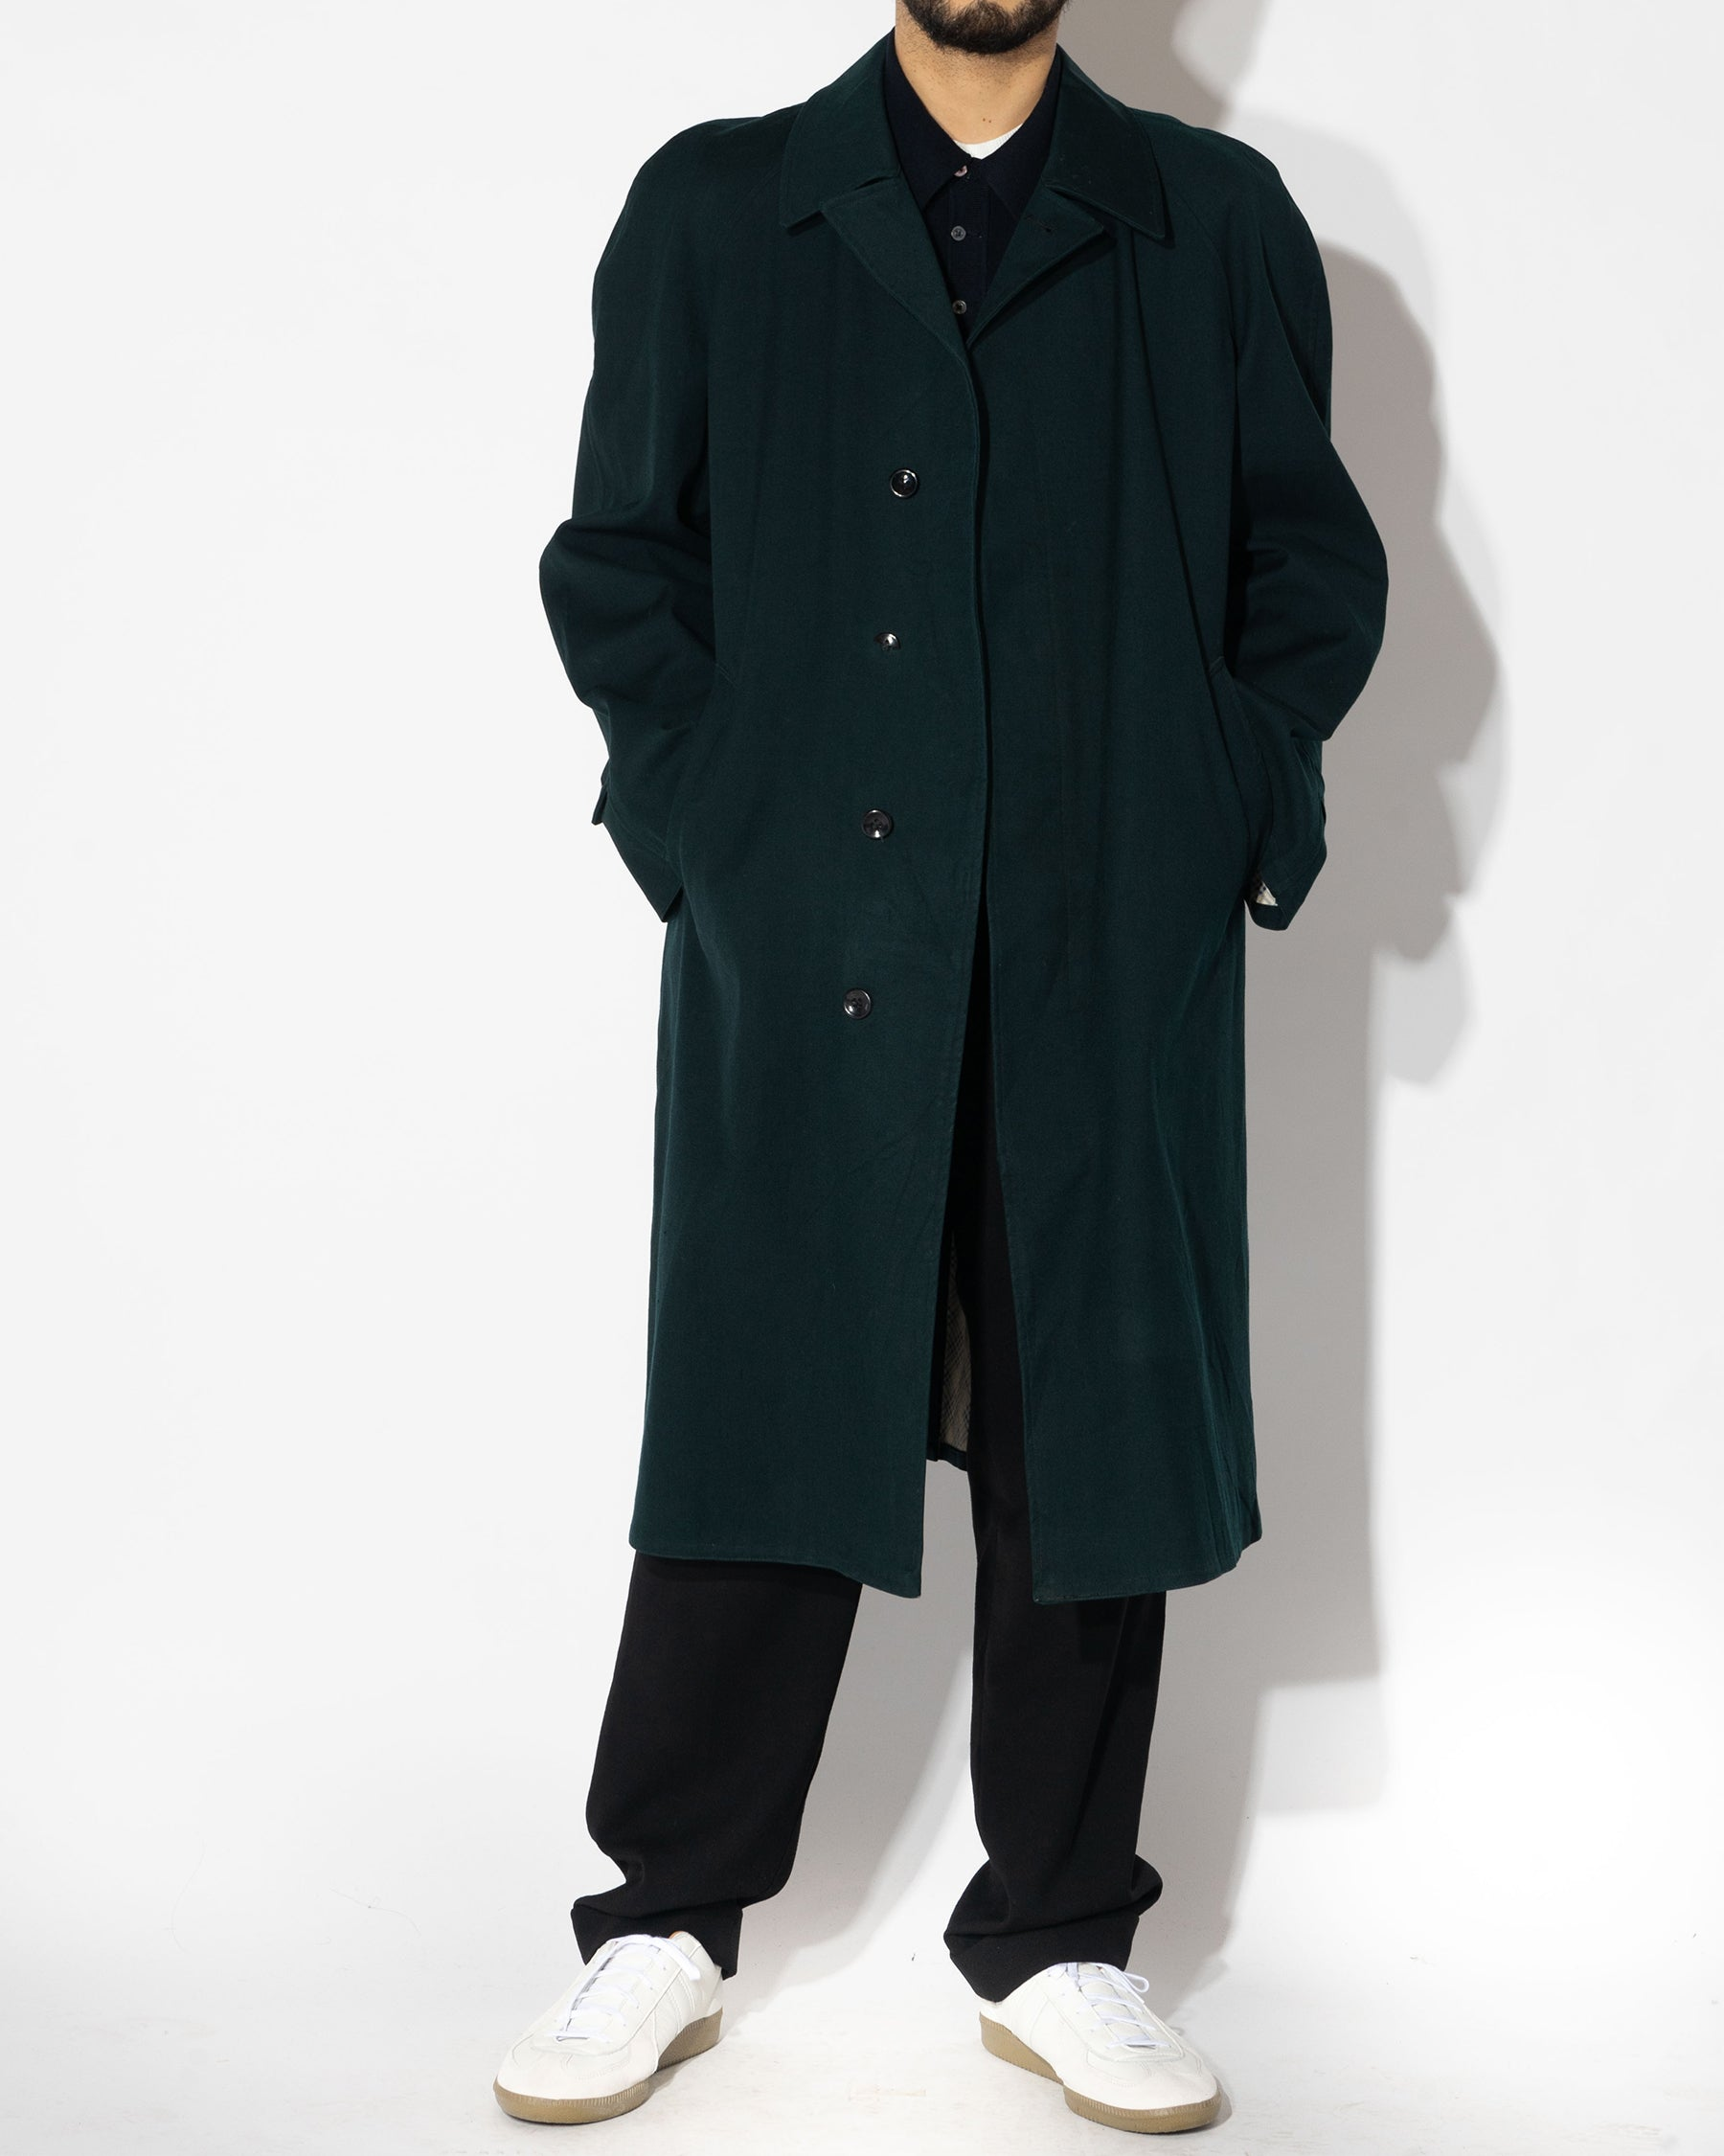 1960's-1970's Euro Rubberized Coat